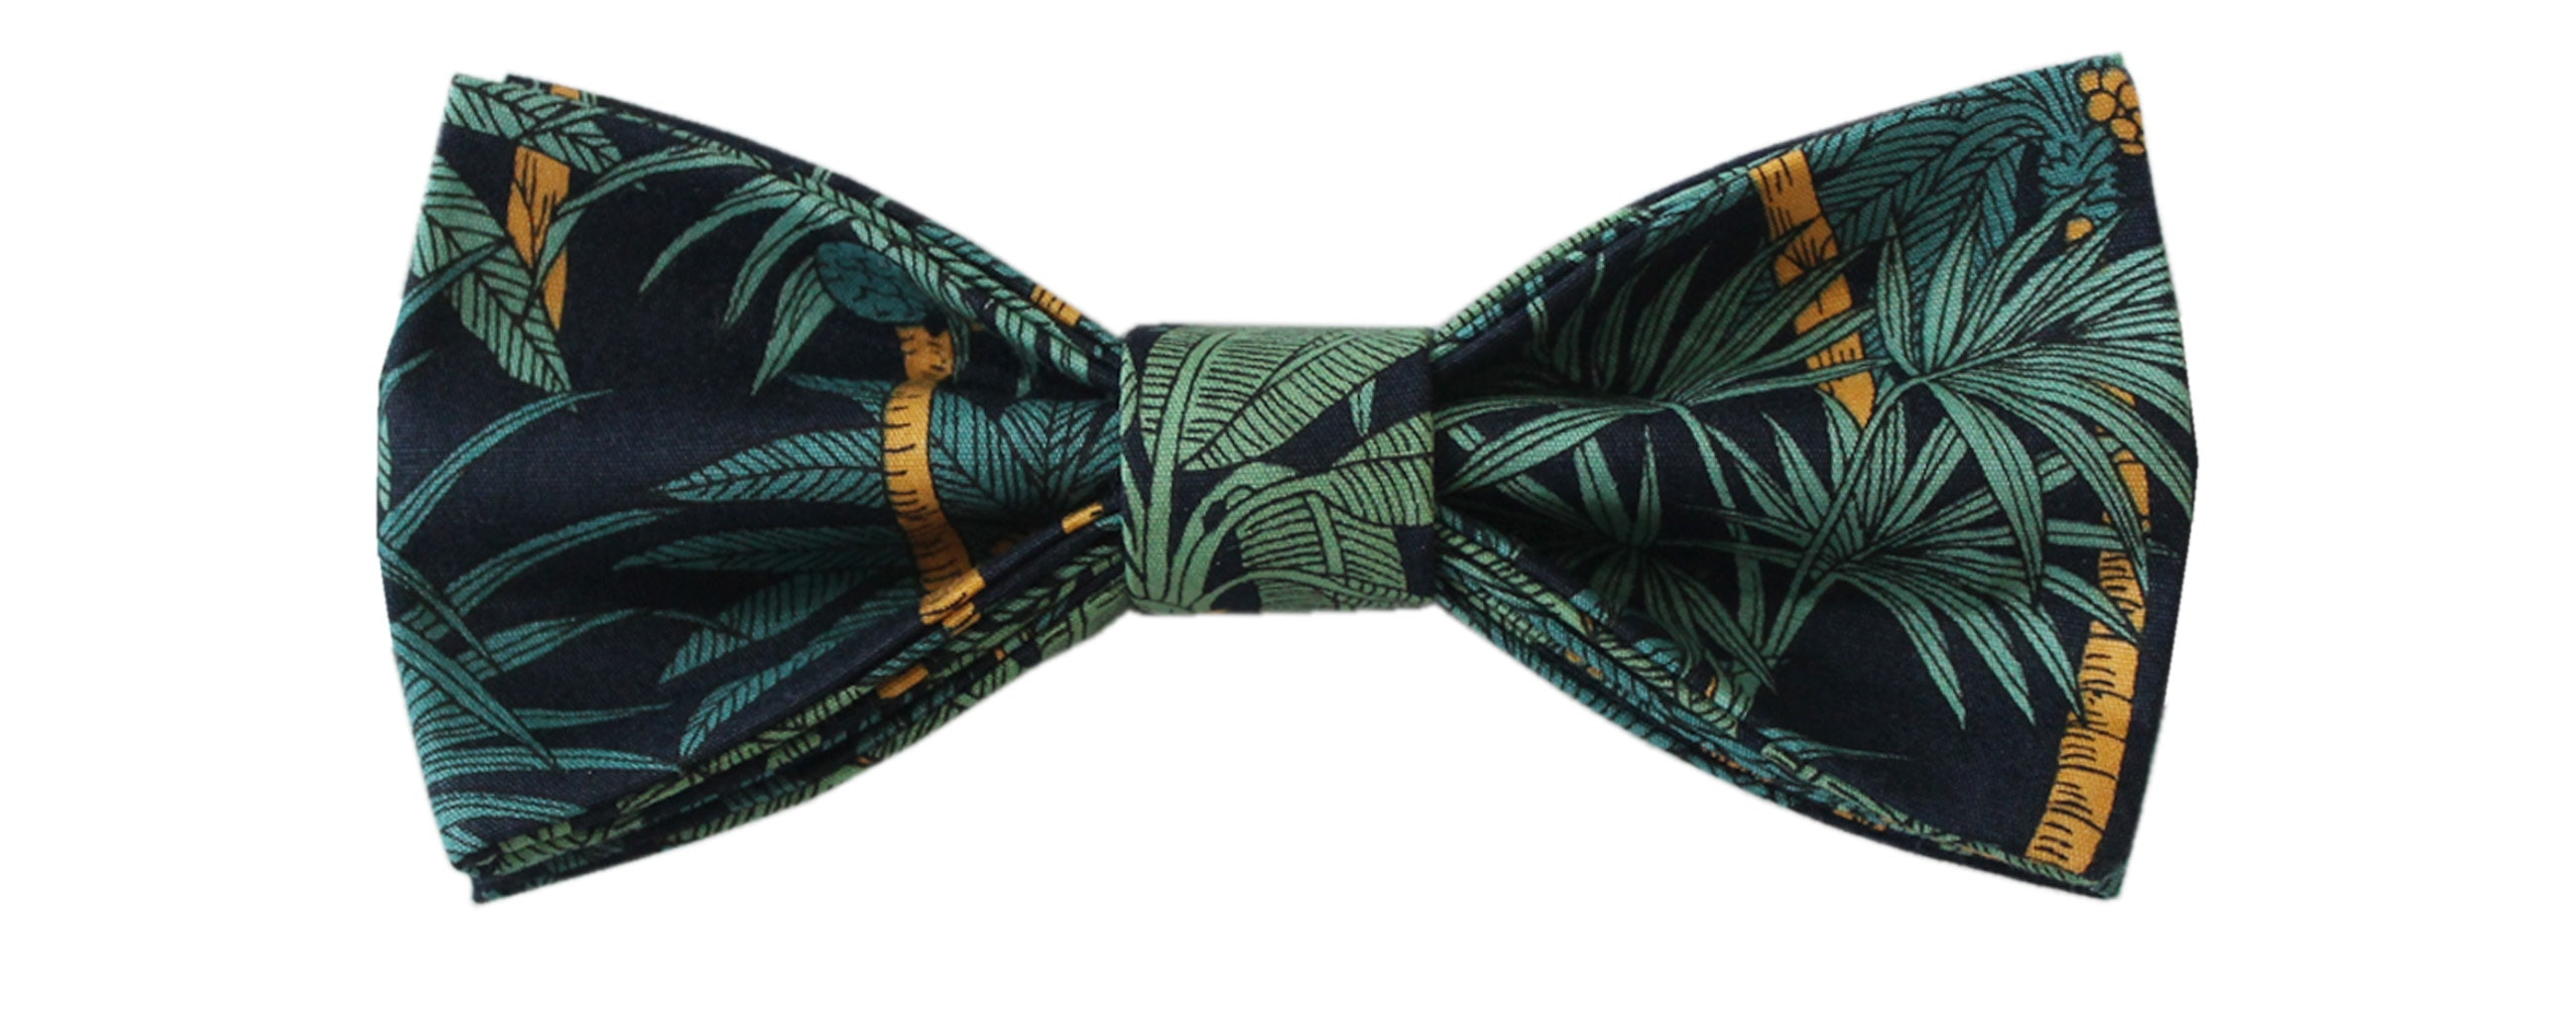 InStitchu Accessories bow-tie Hank in Chief Arnold Navy Bow tie